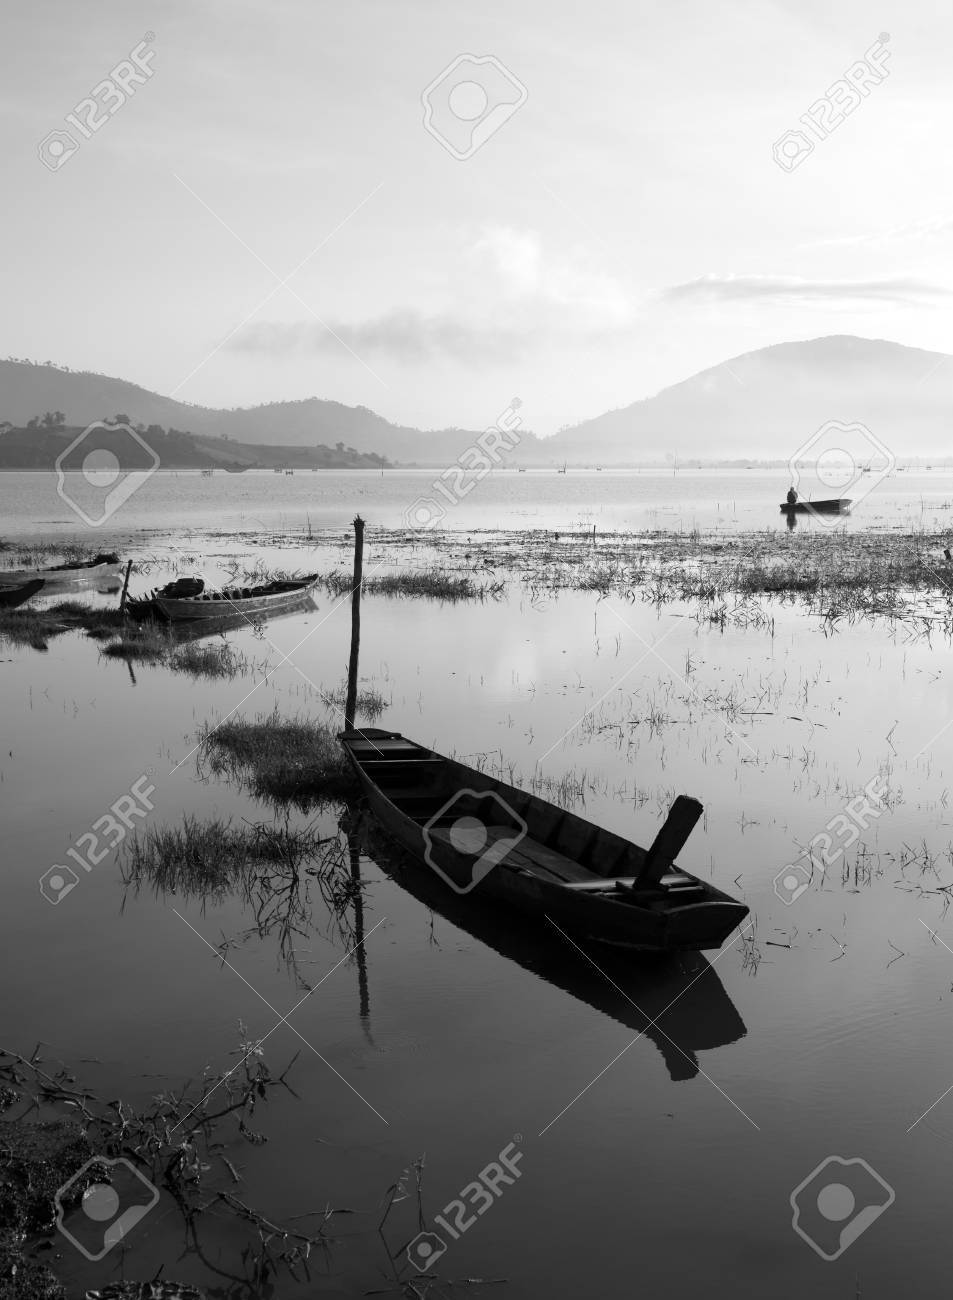 The quiet lake in early morning with black   white tone, fishermen make living on there, boat reflect on surface water Stock Photo - 23117012